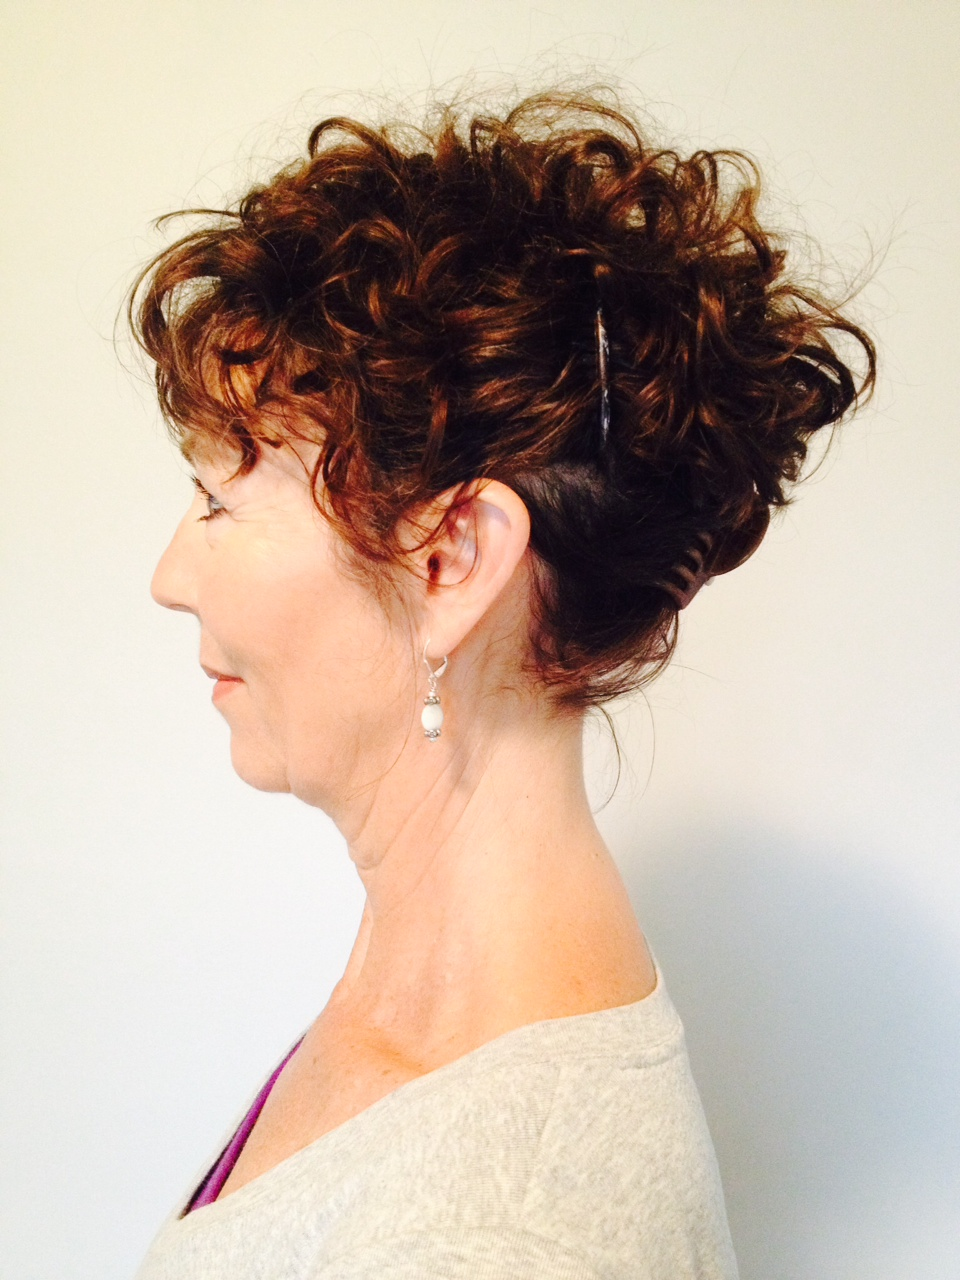 Aligned neck= more circulation, less tension, better moods!